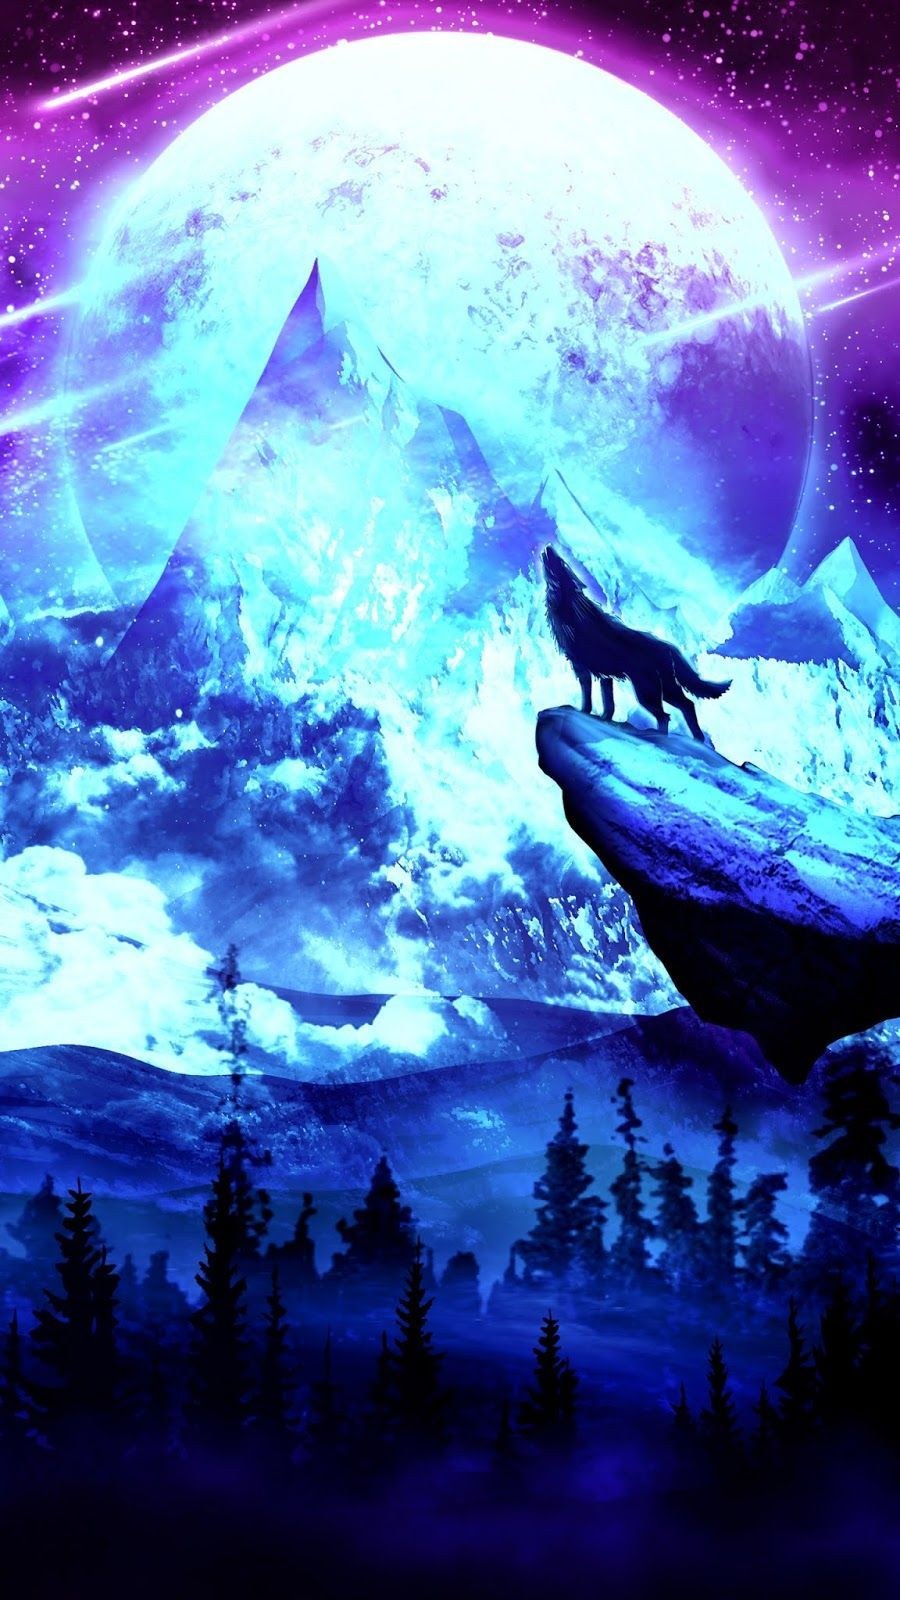 13 Anime Wolf Wallpaper Iphone Wallpapers Wolf Wallpaper Cute Galaxy Wallpaper Wolf Painting